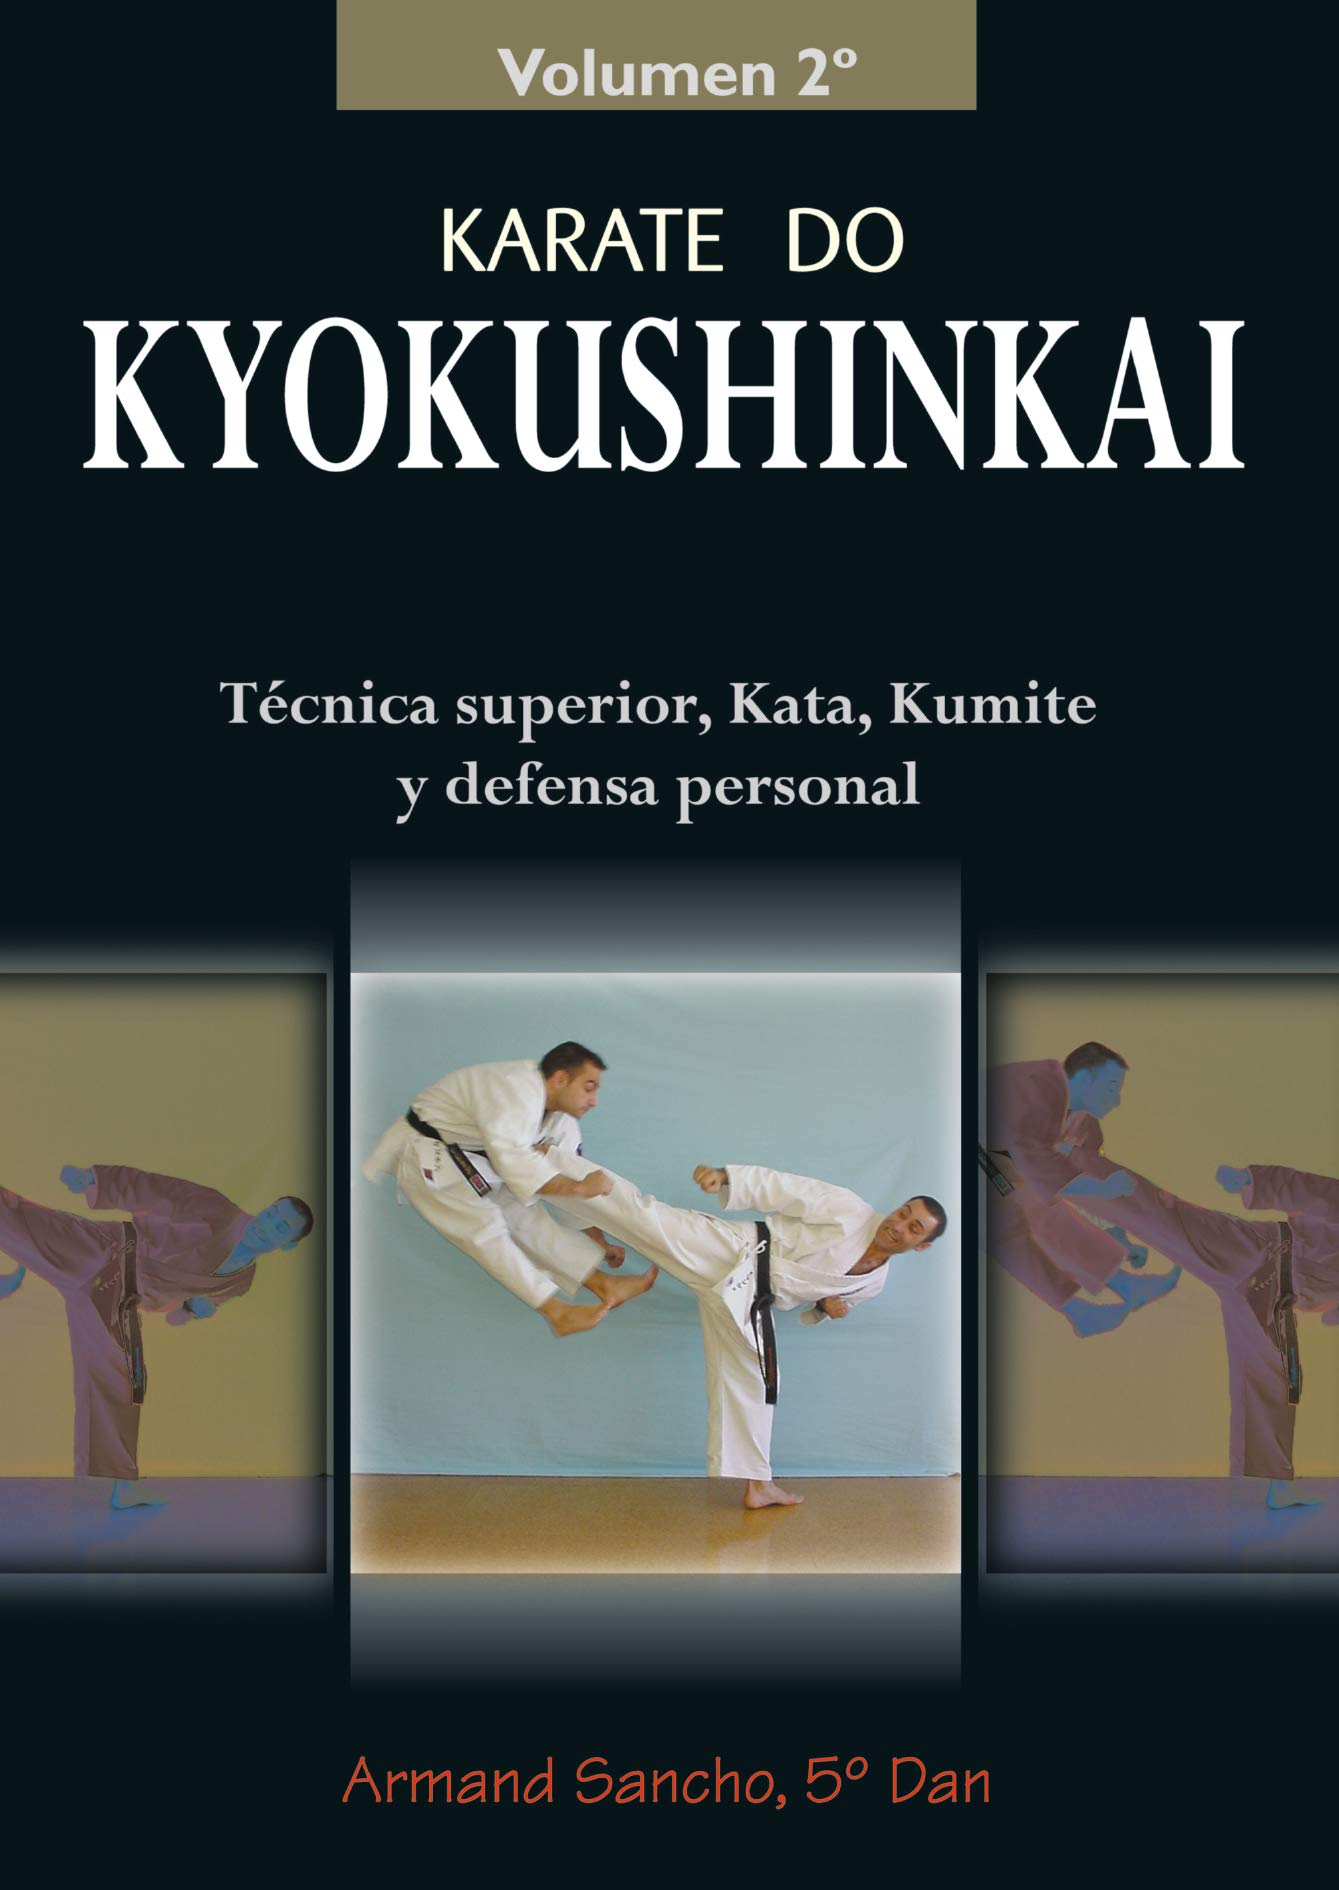 Karate Kyokushinkai (Volumen 2º)